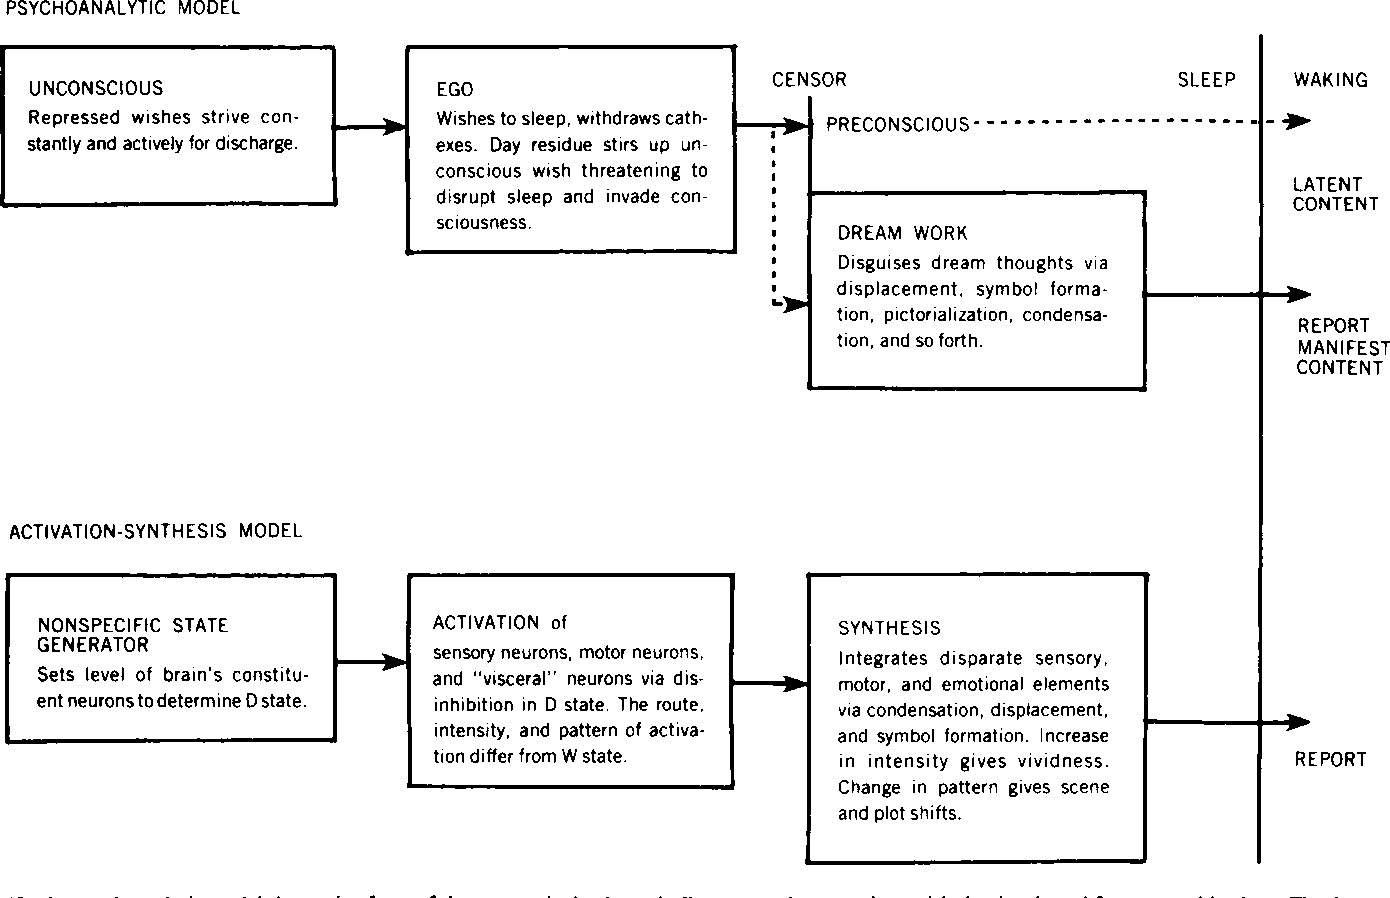 activation synthesis model of dreaming